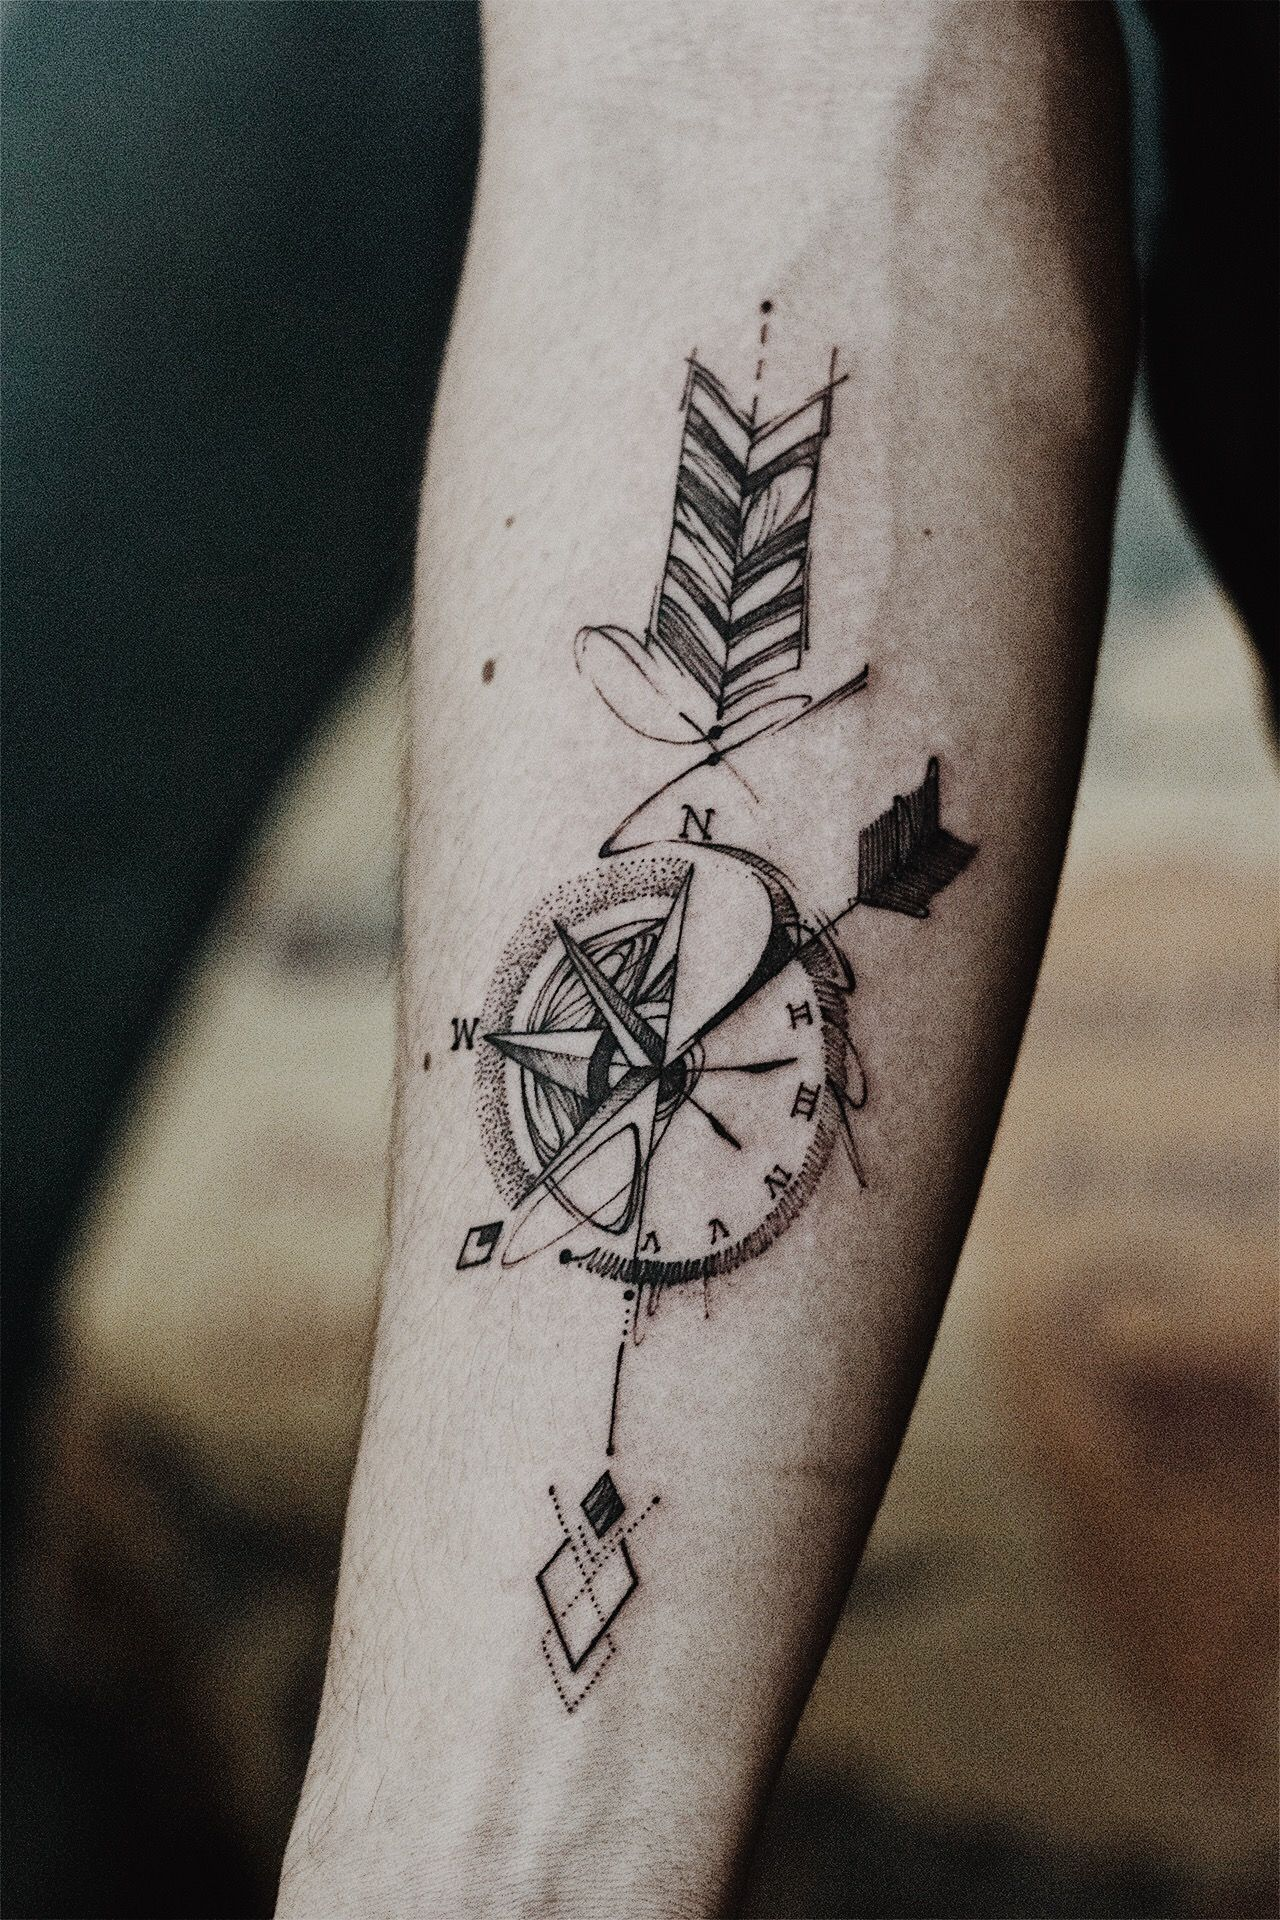 Discussion on this topic: 40 Watercolor Compass Tattoo Designs For Men , 40-watercolor-compass-tattoo-designs-for-men/